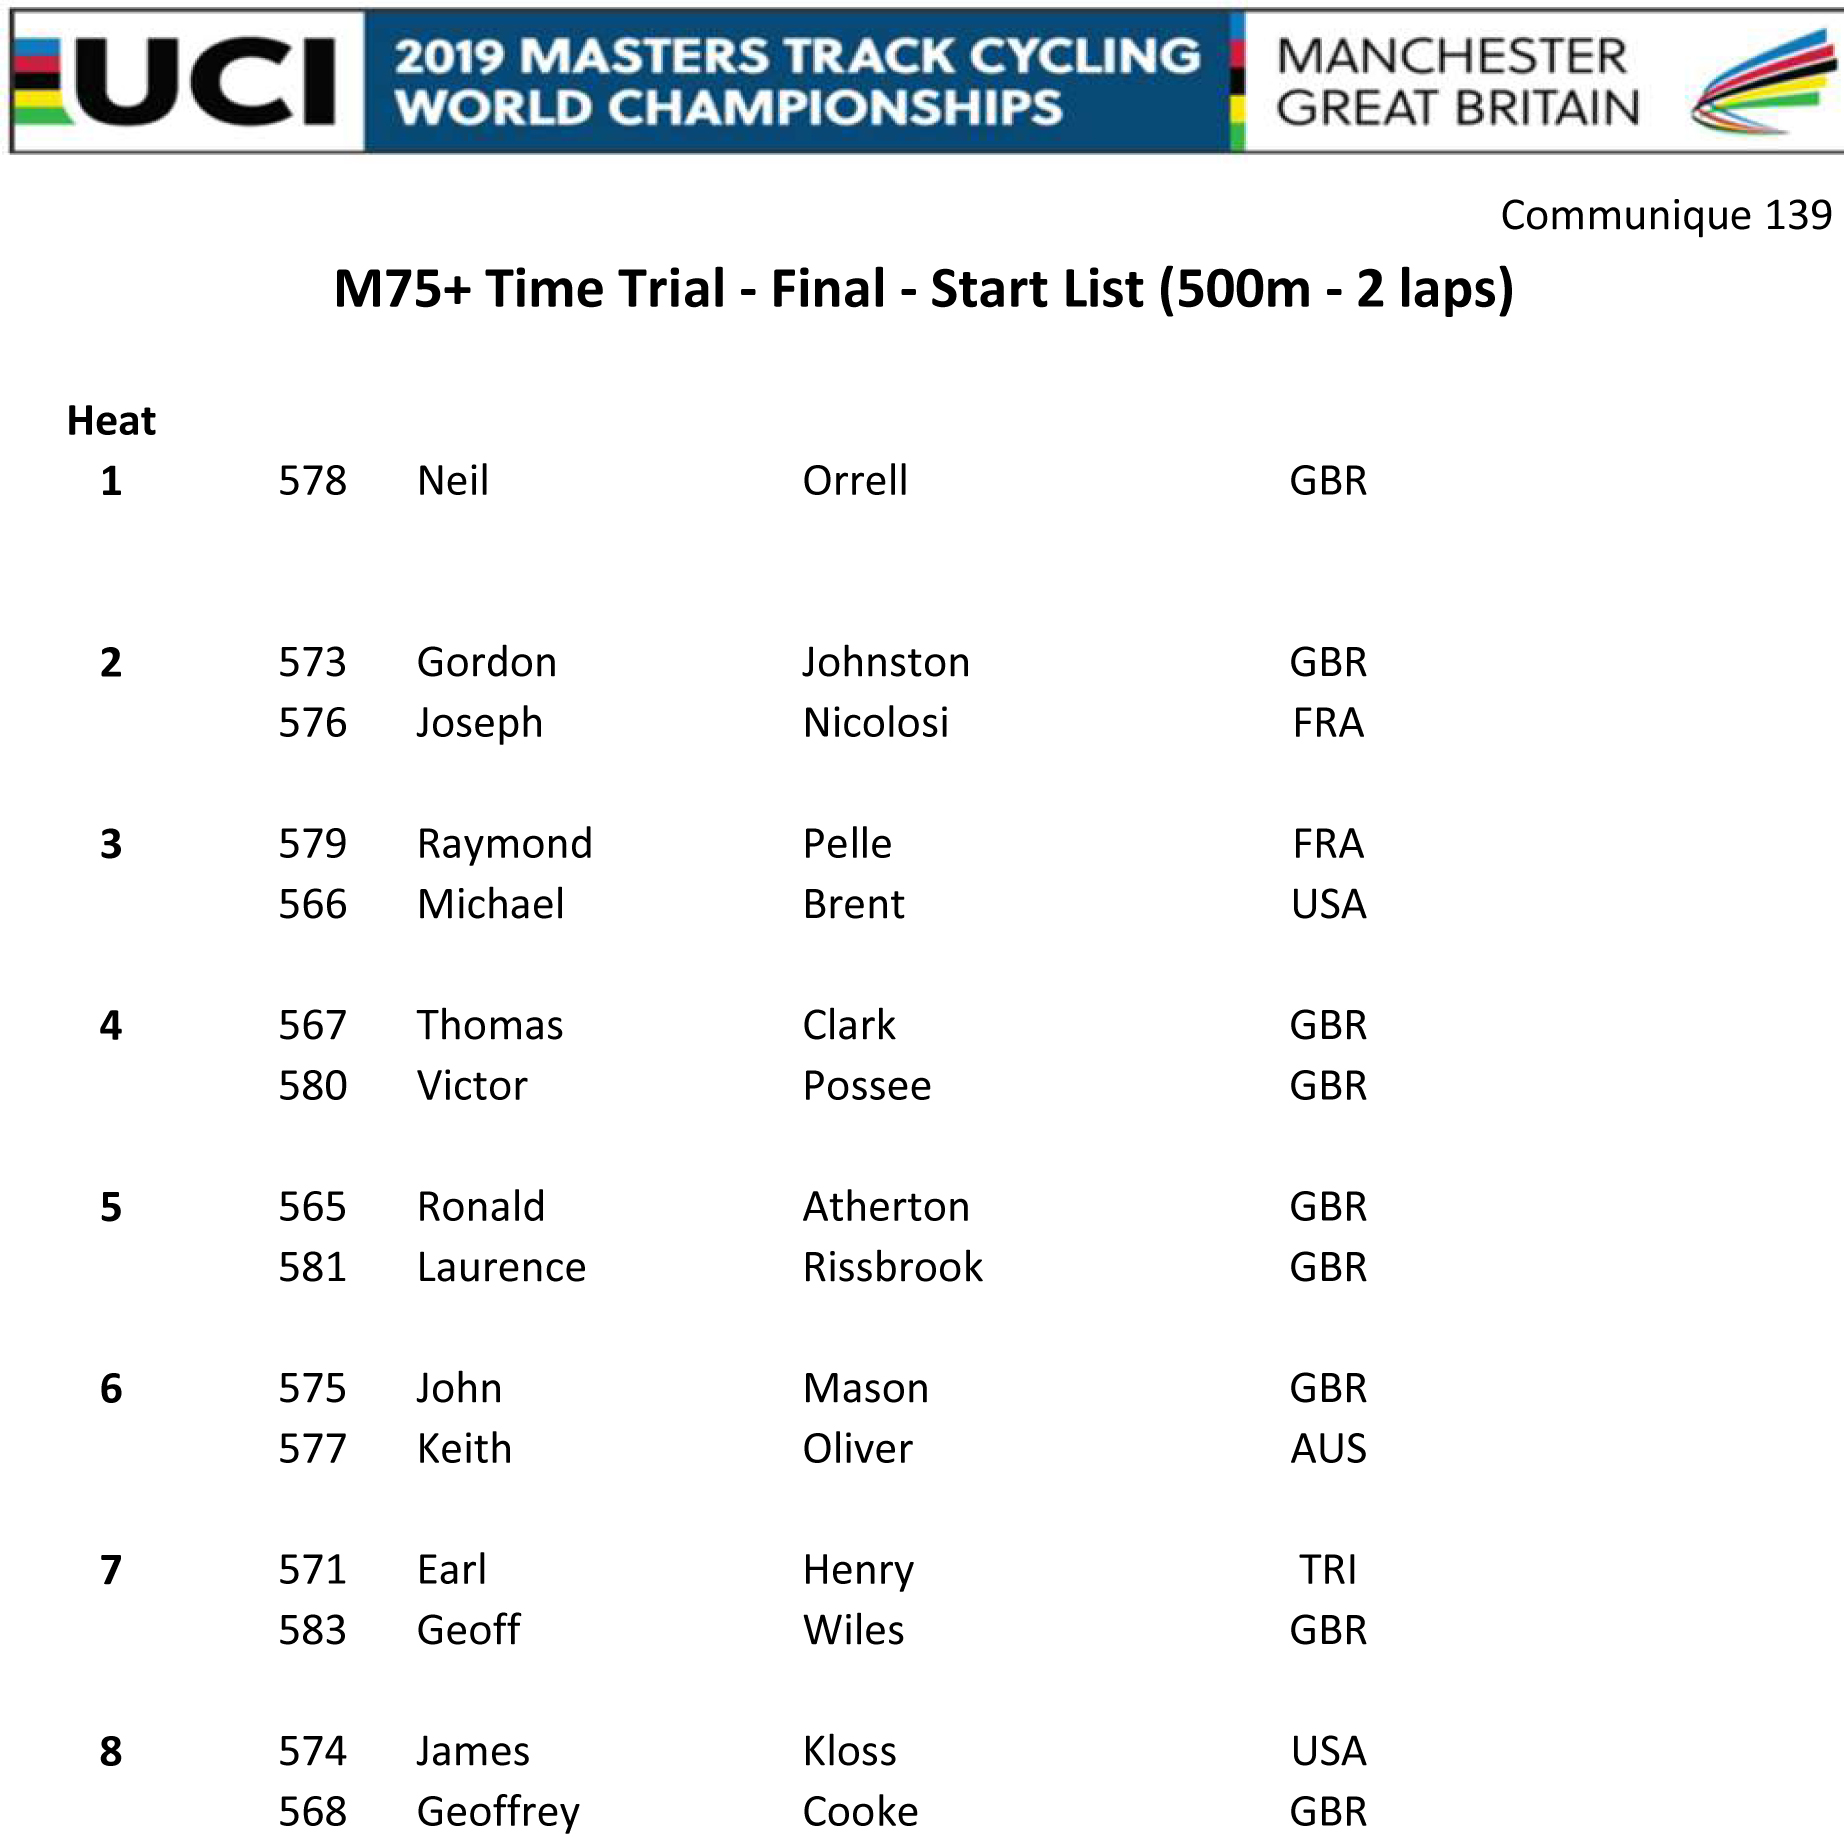 M75 TIME TRIAL START LIST